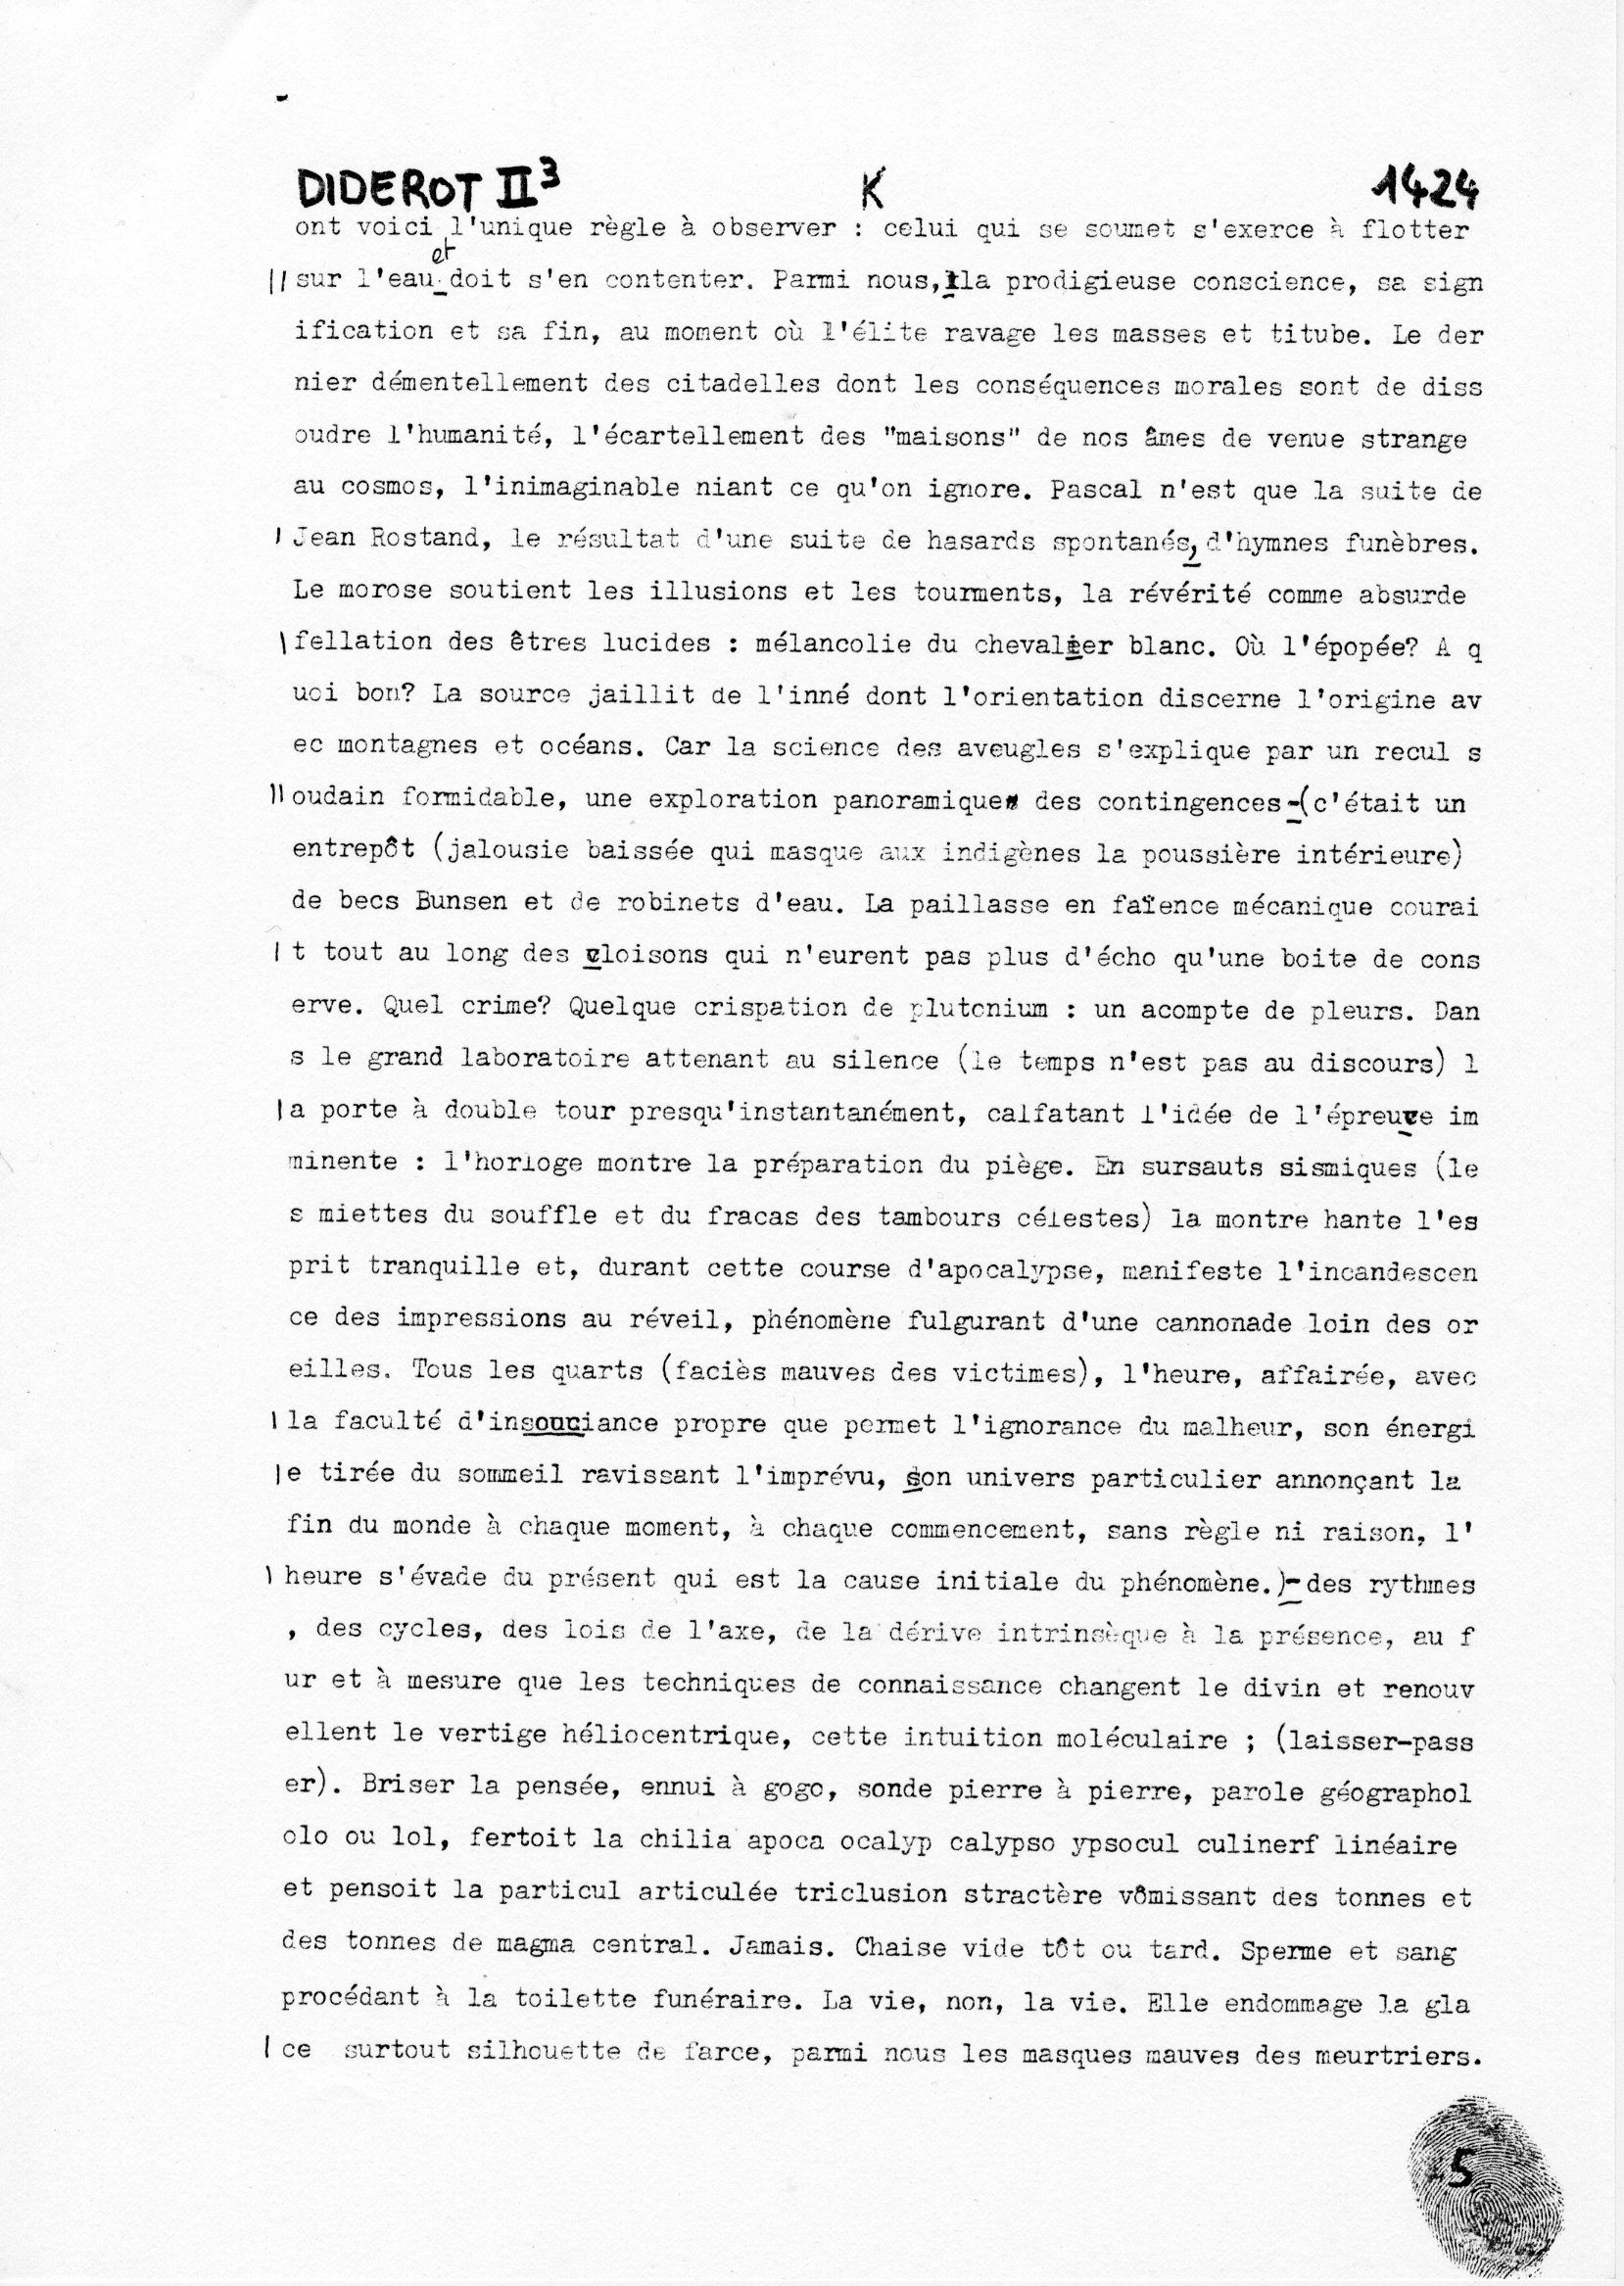 page 1424 Diderot II p3 K